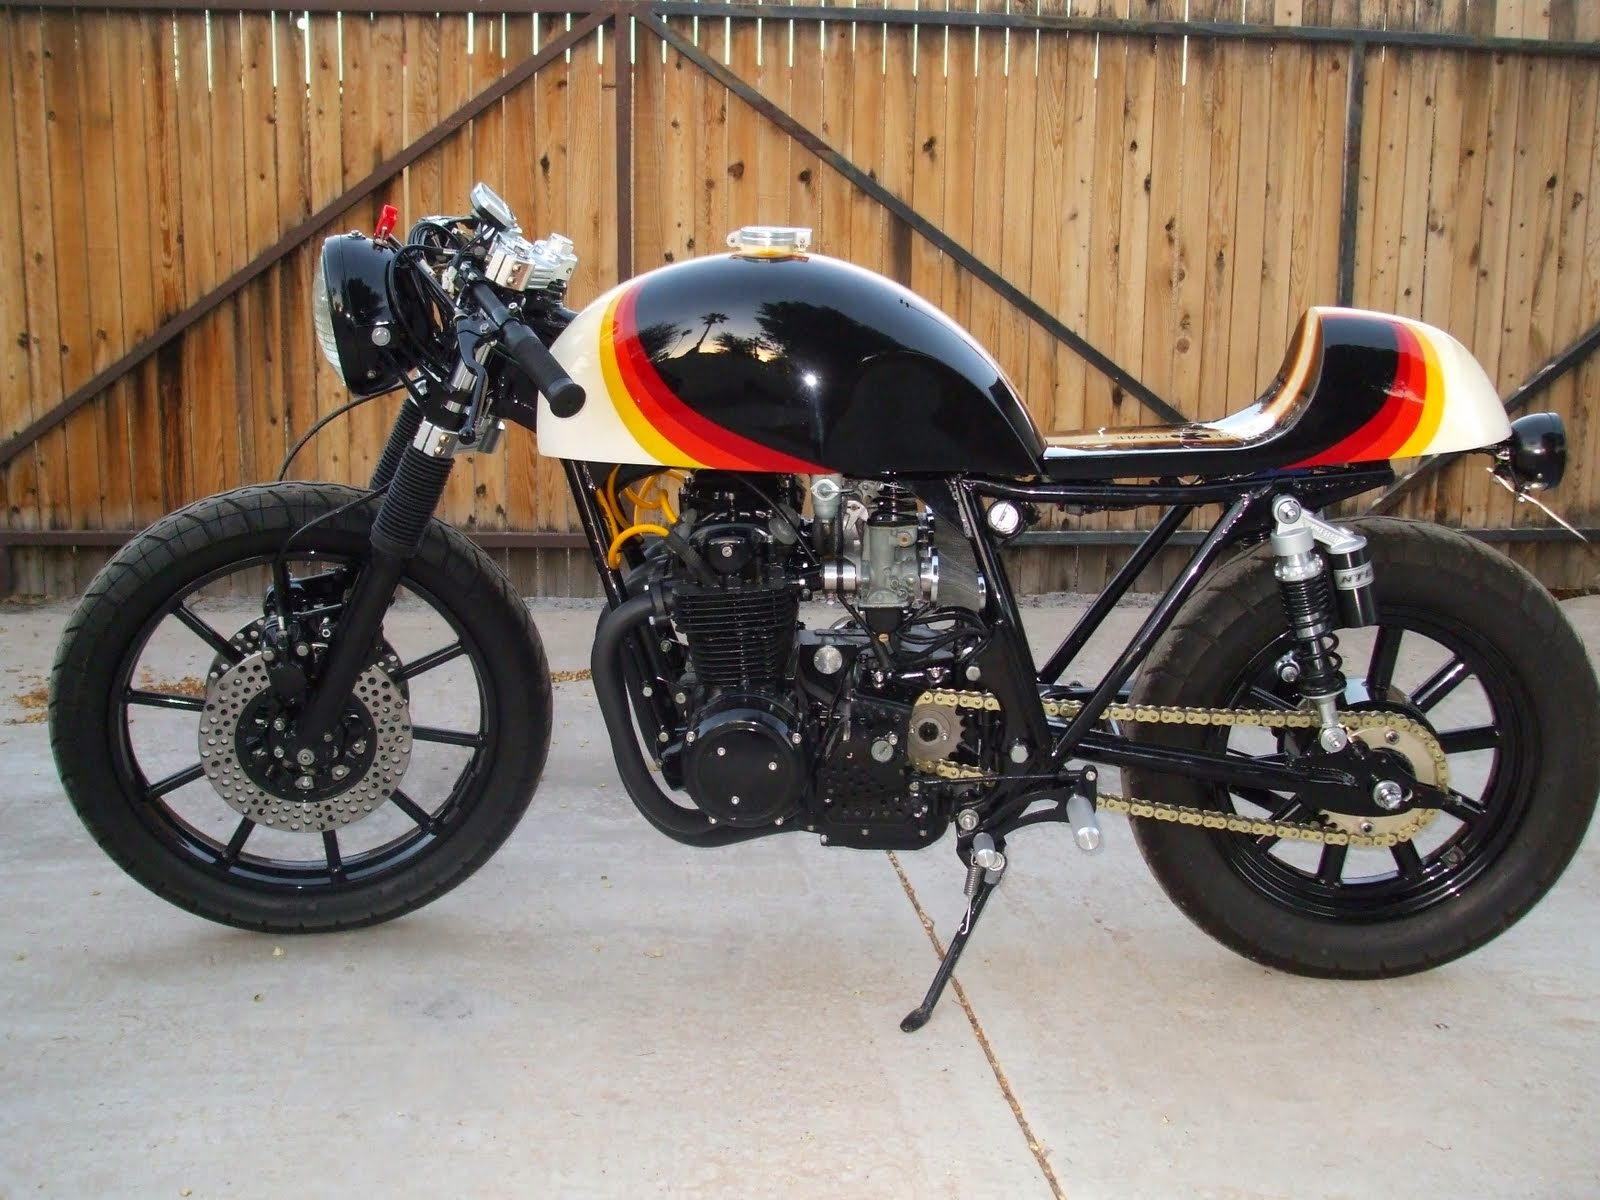 Honda Win Modifikasi Cafe Racer